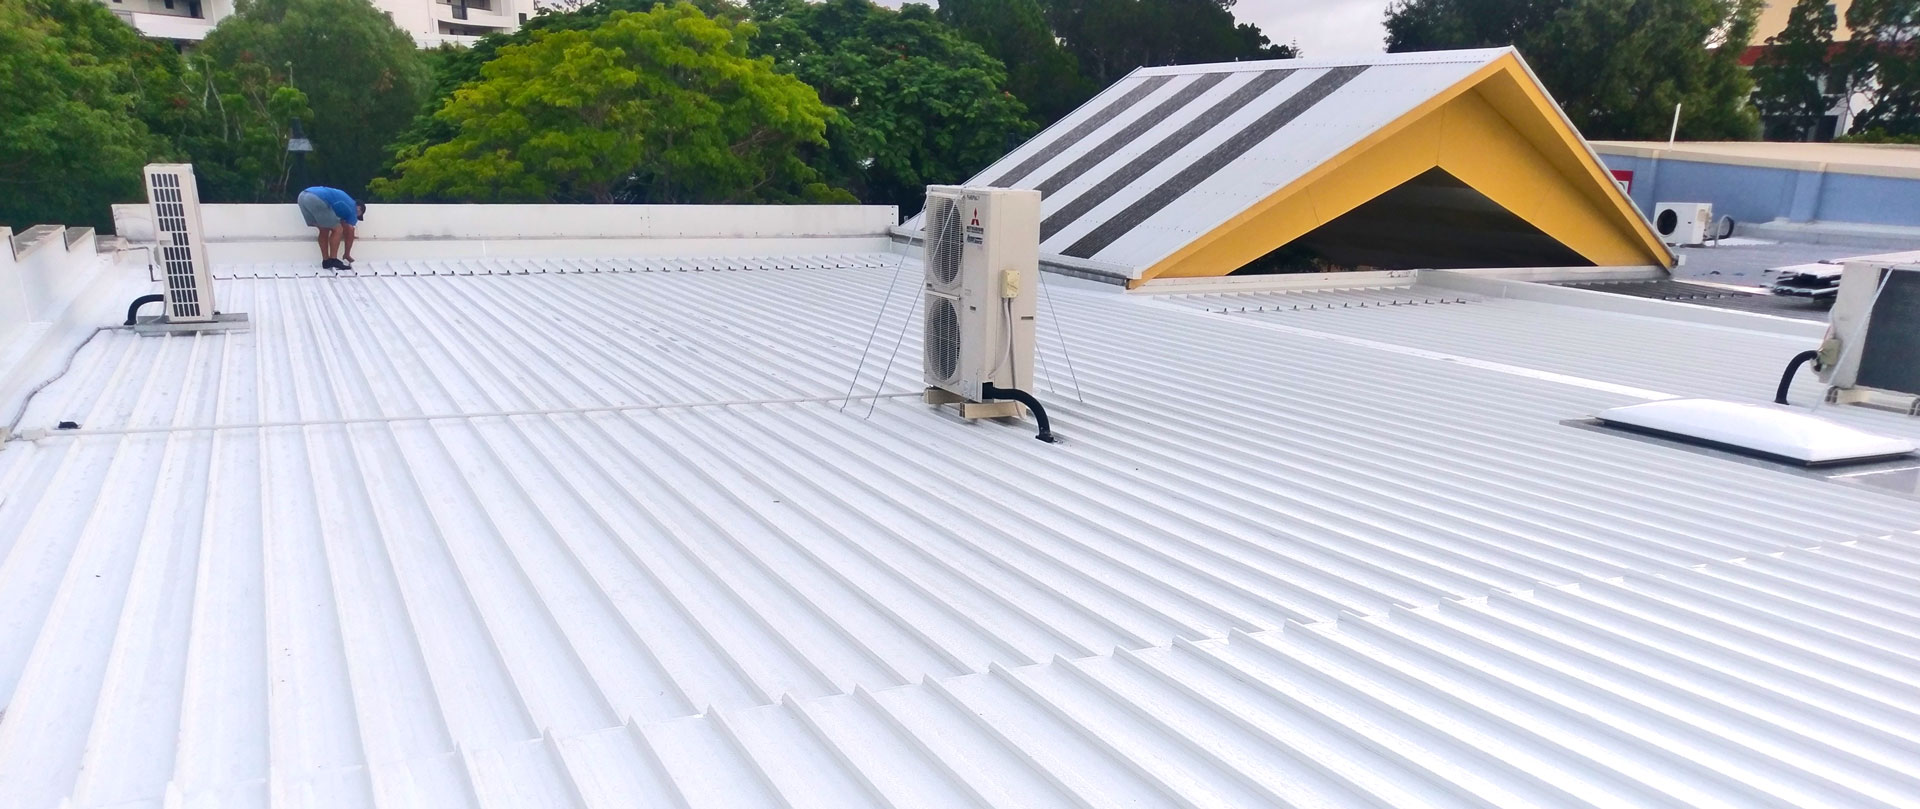 Golden Beach Shops Roof Replacement - Roofing Projects